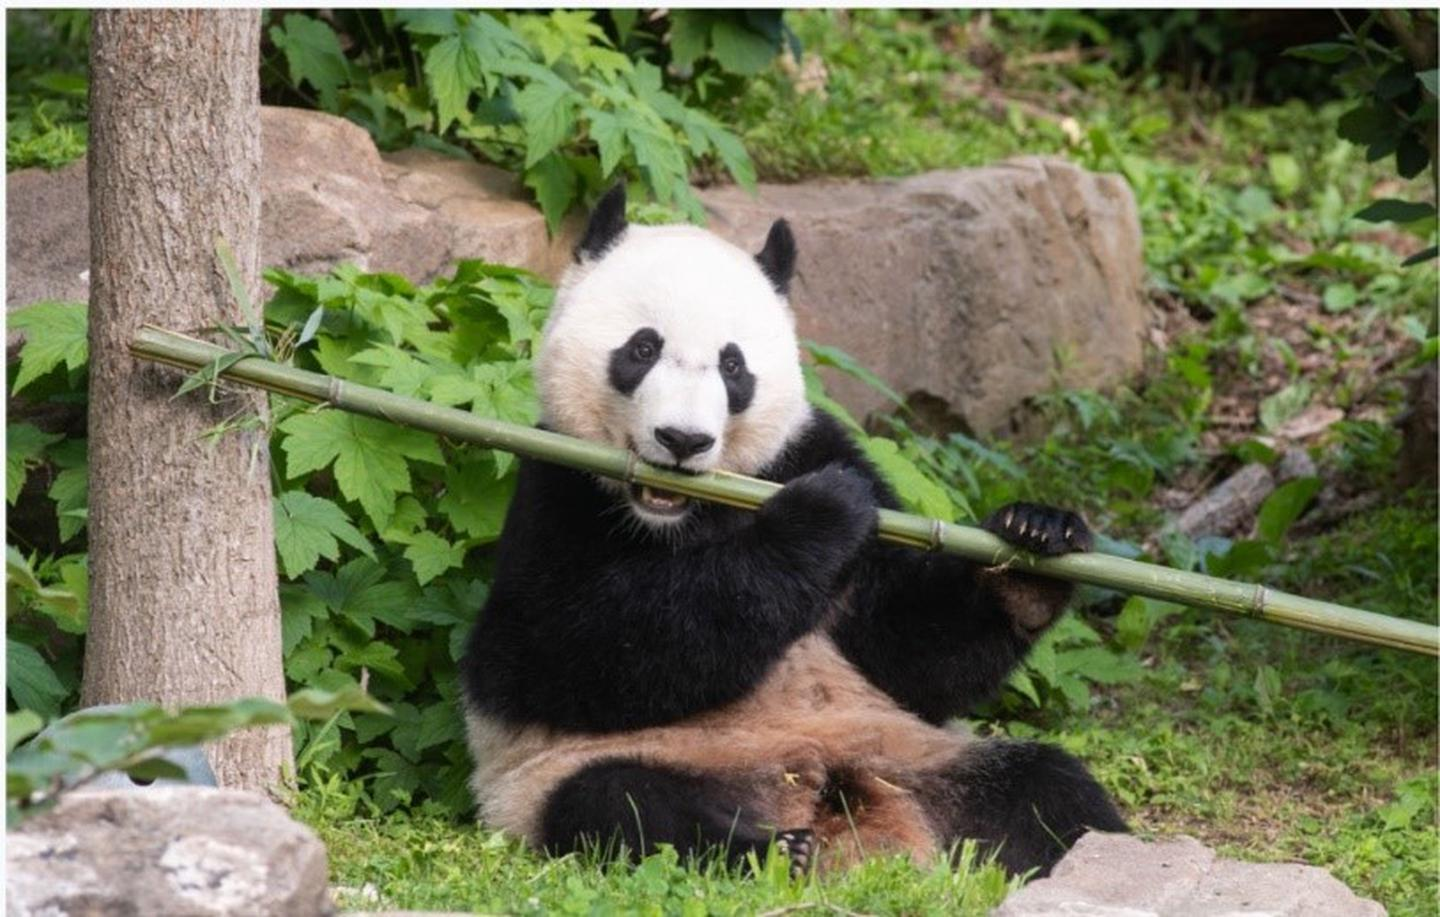 Bei Bei eating bambooAnimals at the National Zoo